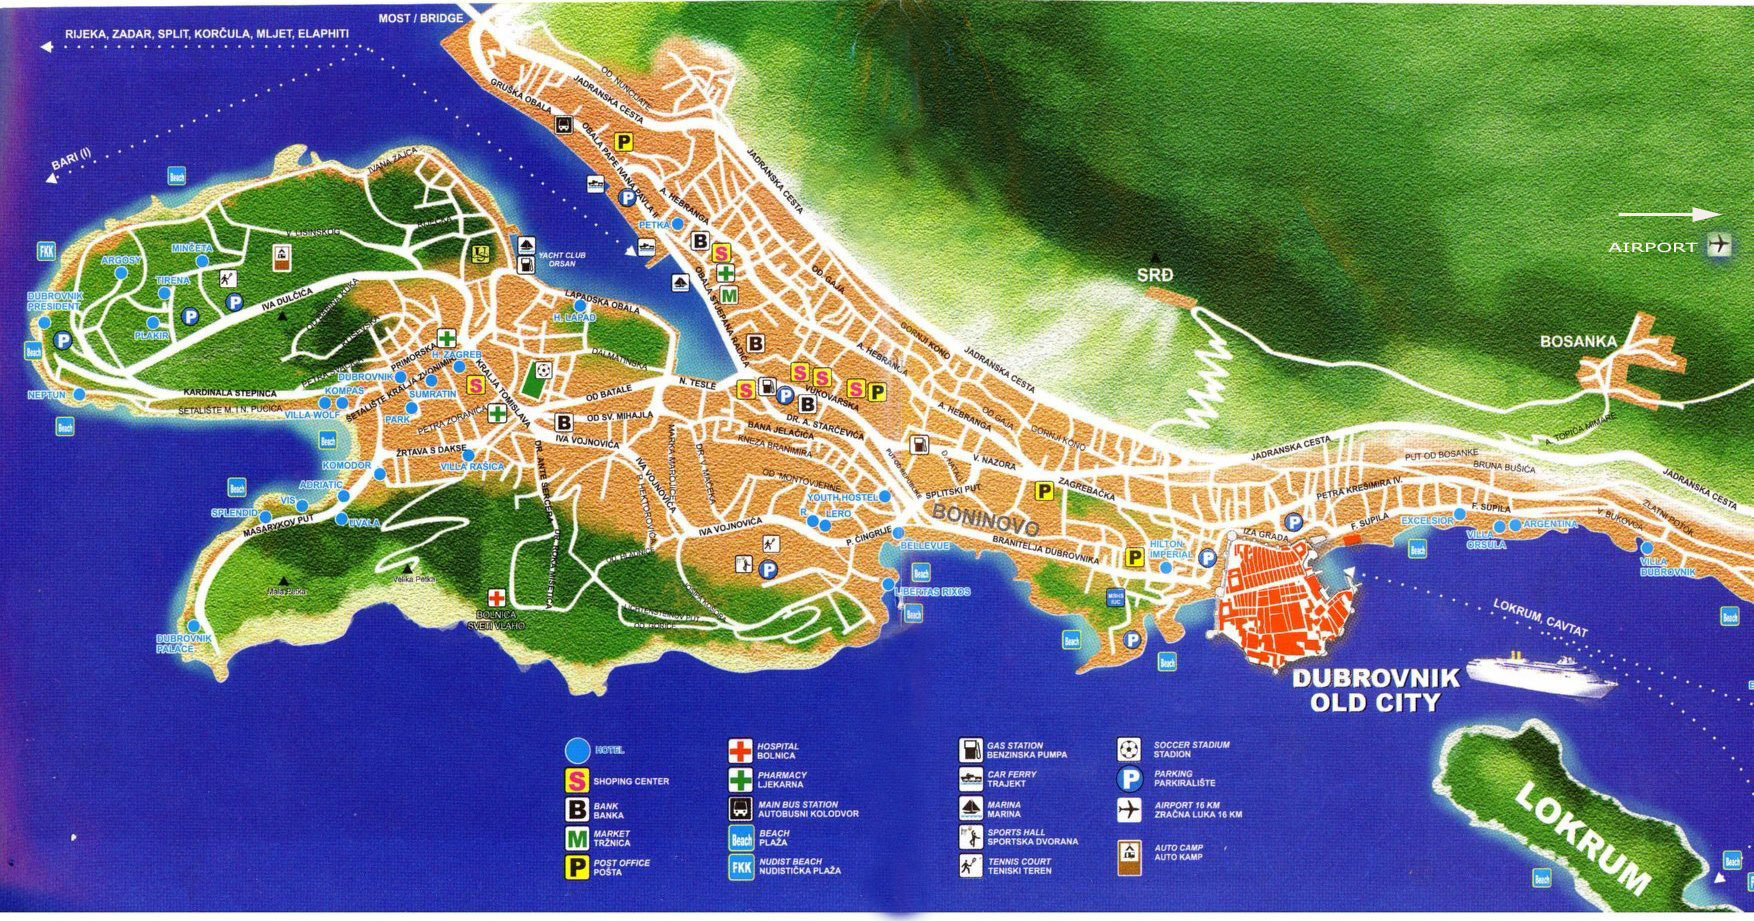 Dubrovnik Croatia Detailed Town City Map Free Download